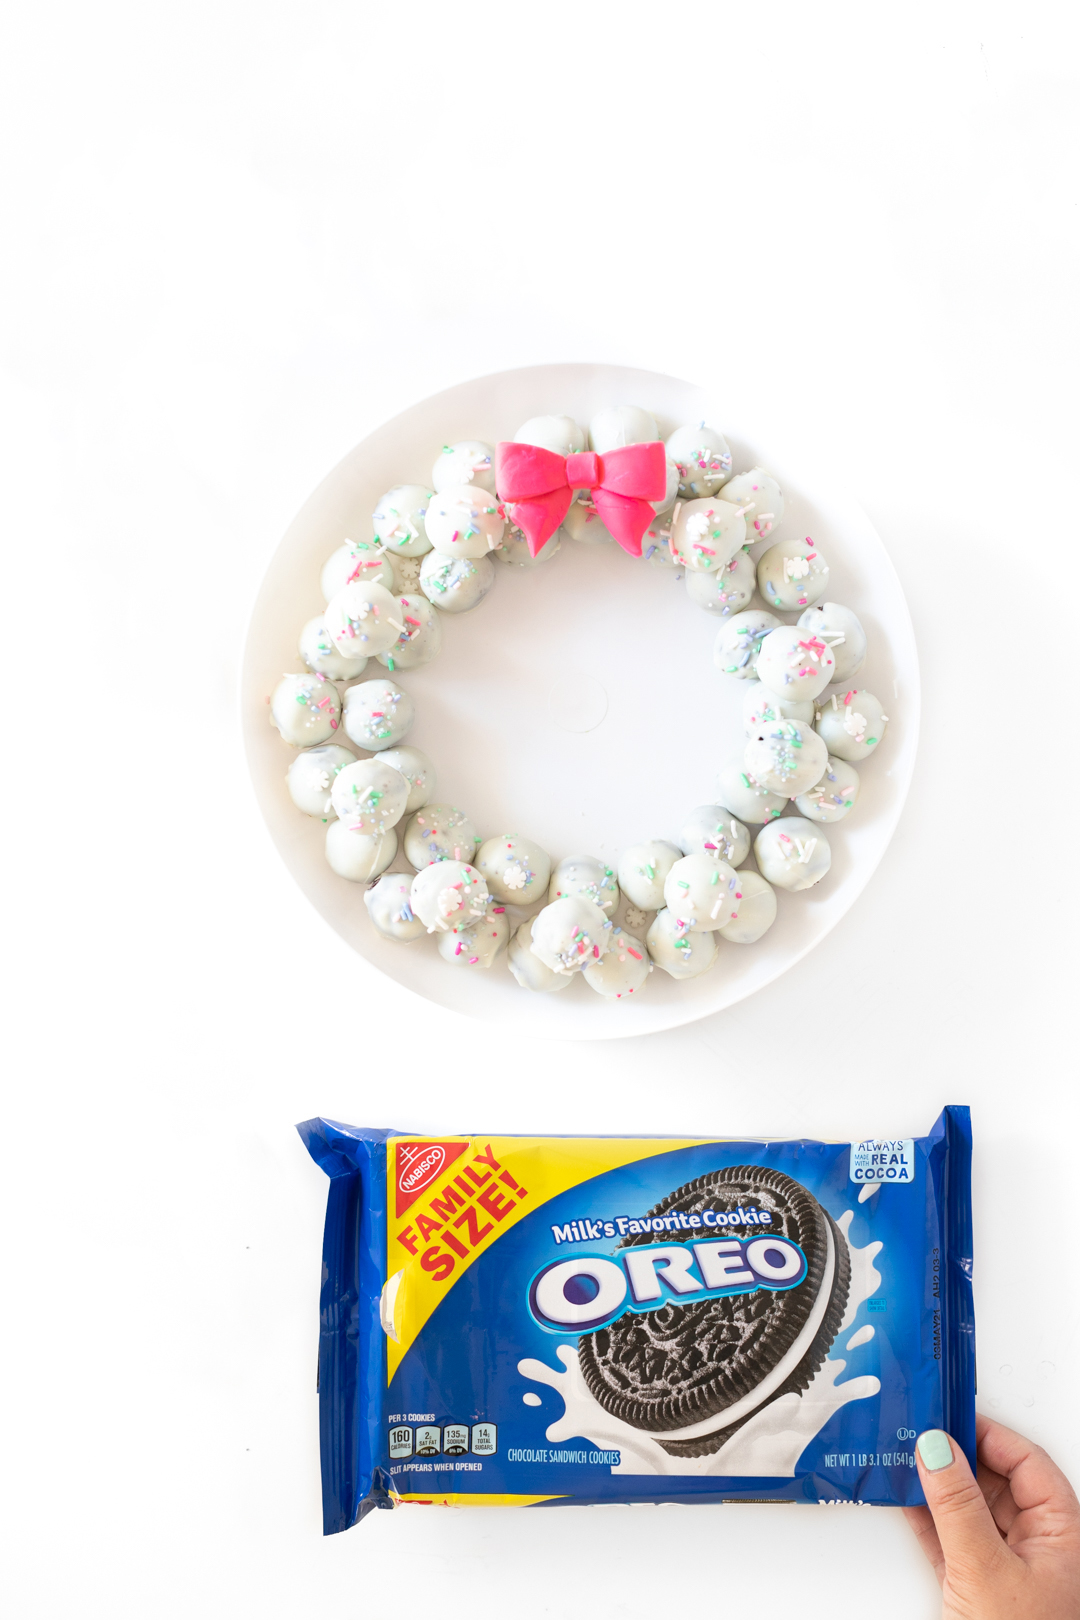 OREO Cookies used to make holiday cookie balls.